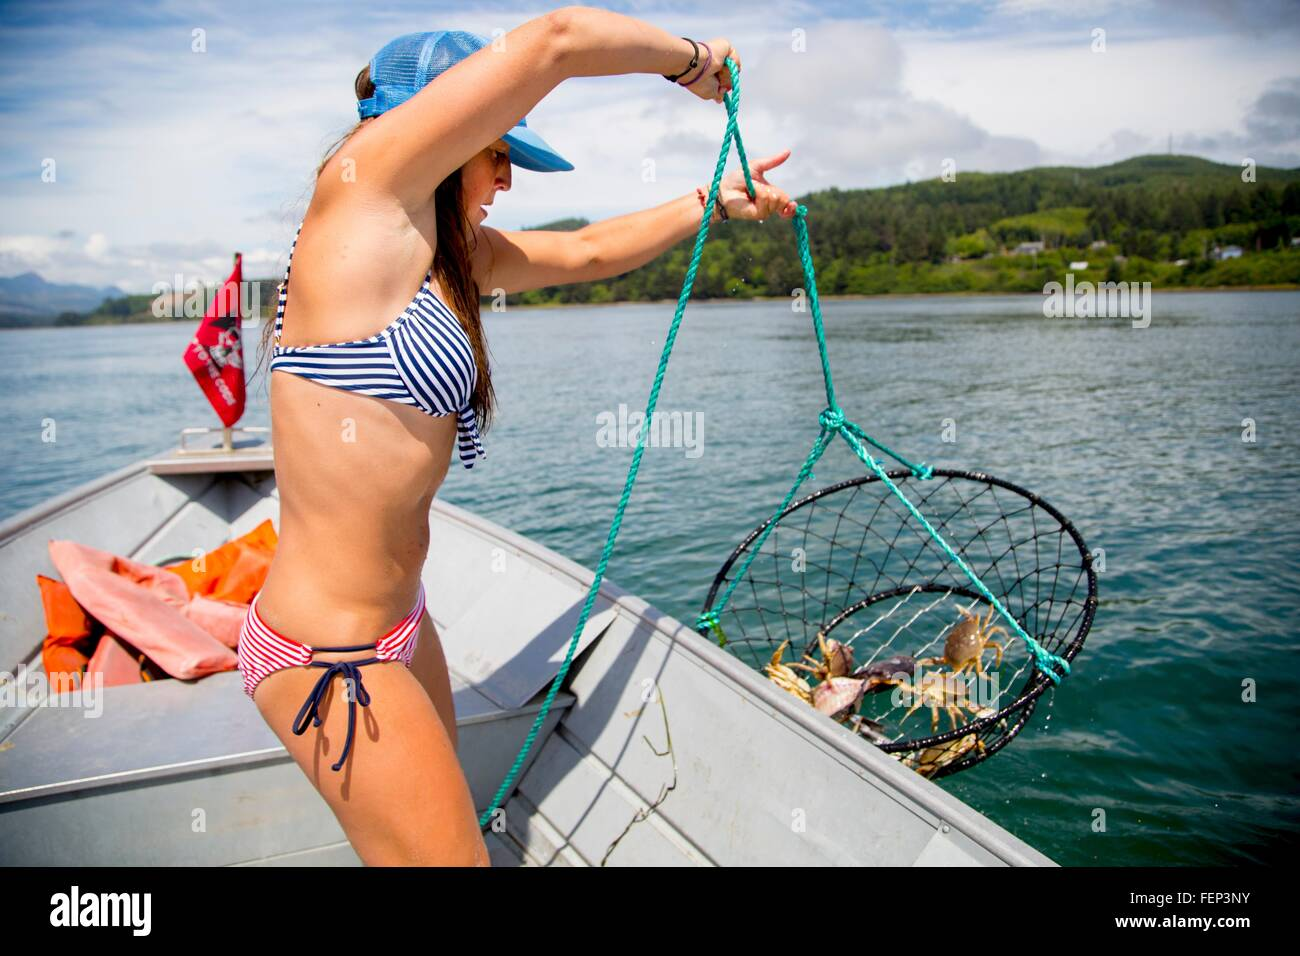 Young woman hauling in crab trap on fishing boat, Nehalem Bay, Oregon, USA Stock Photo